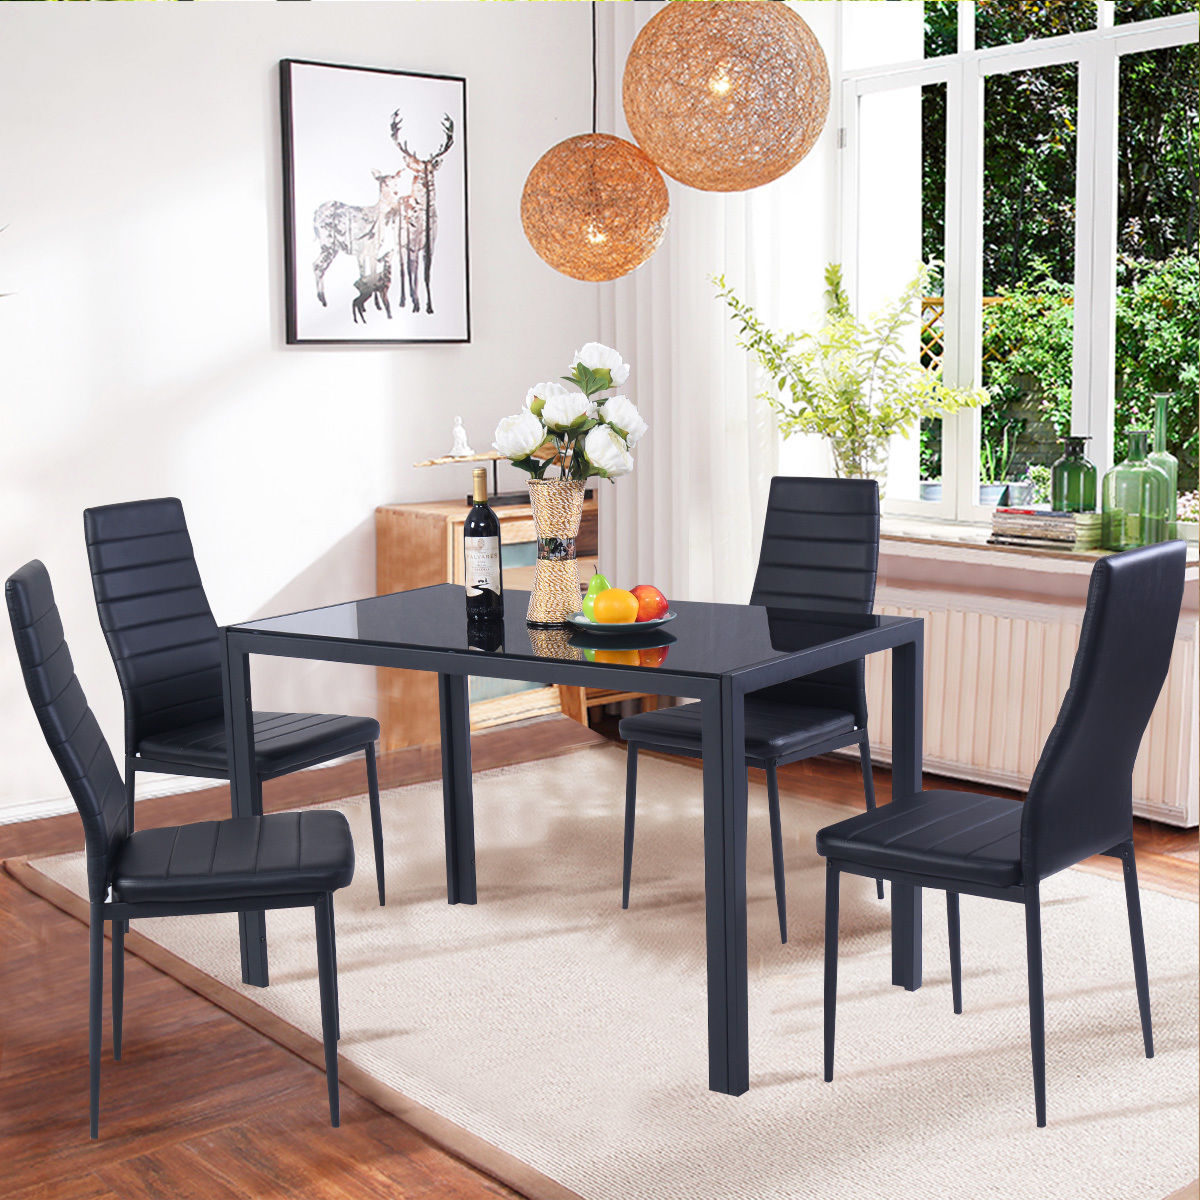 Glass And Metal Furniture. Costway 5 Piece Kitchen Dining Set Glass Metal  Table And 4